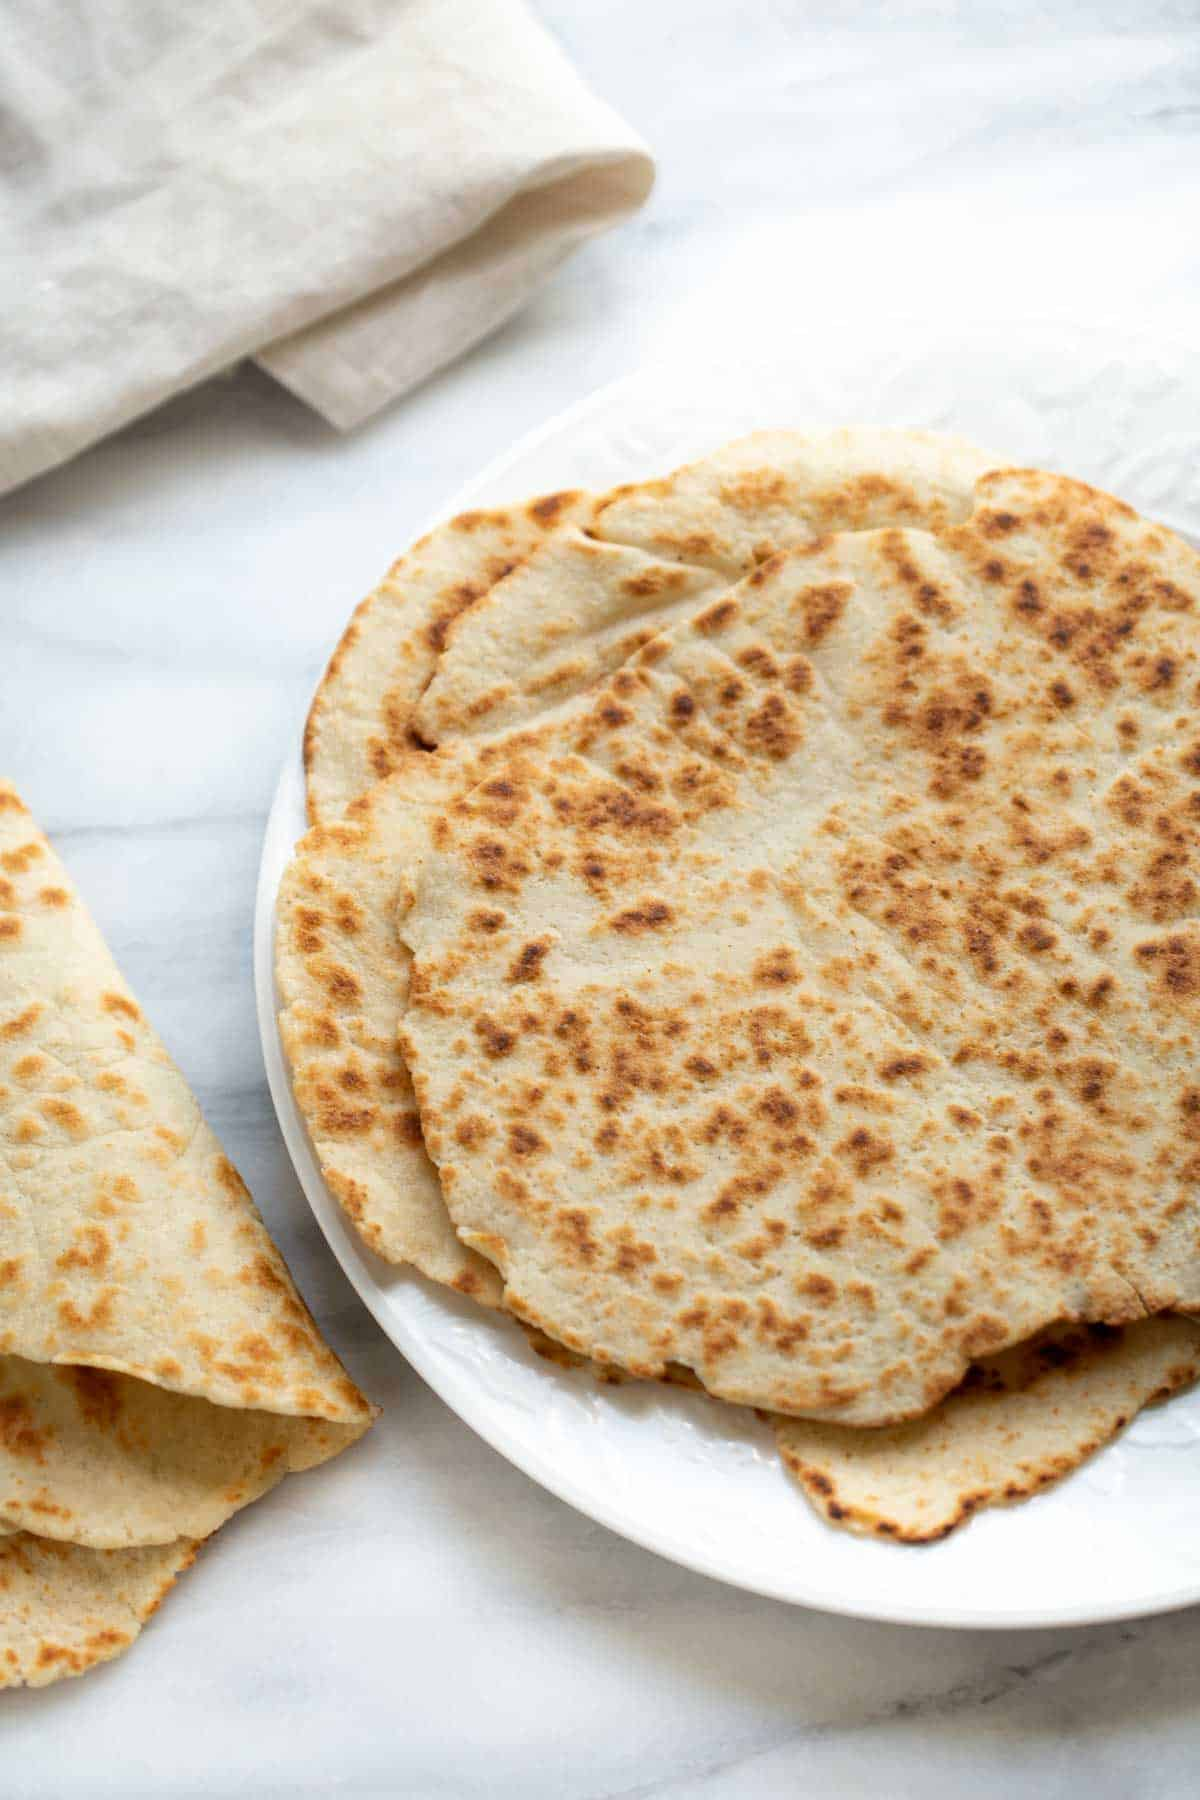 gluten-free flatbread on white plate with marble background